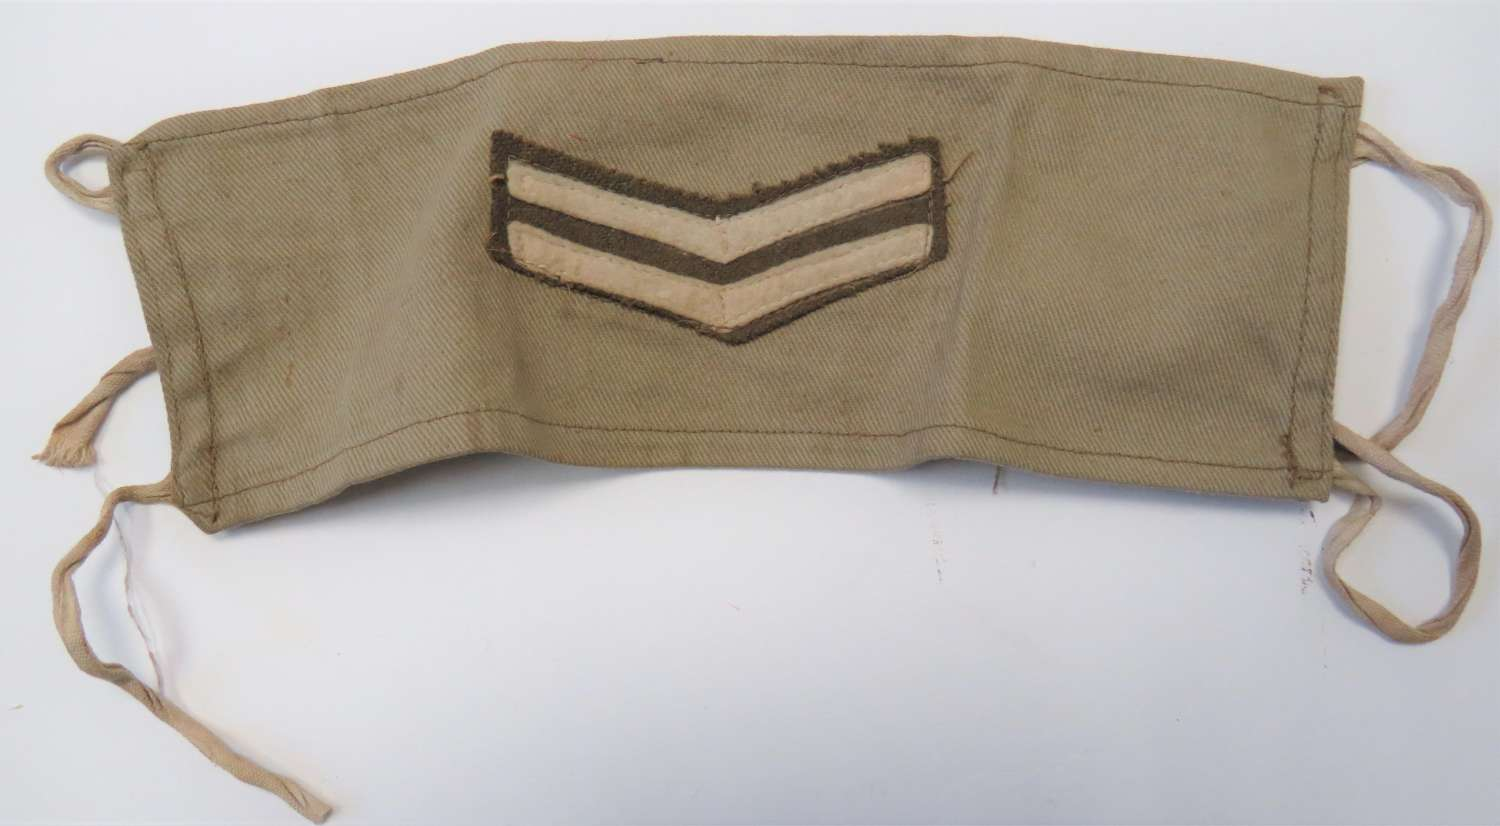 WW2 Tropical Corporals Armband Ranking